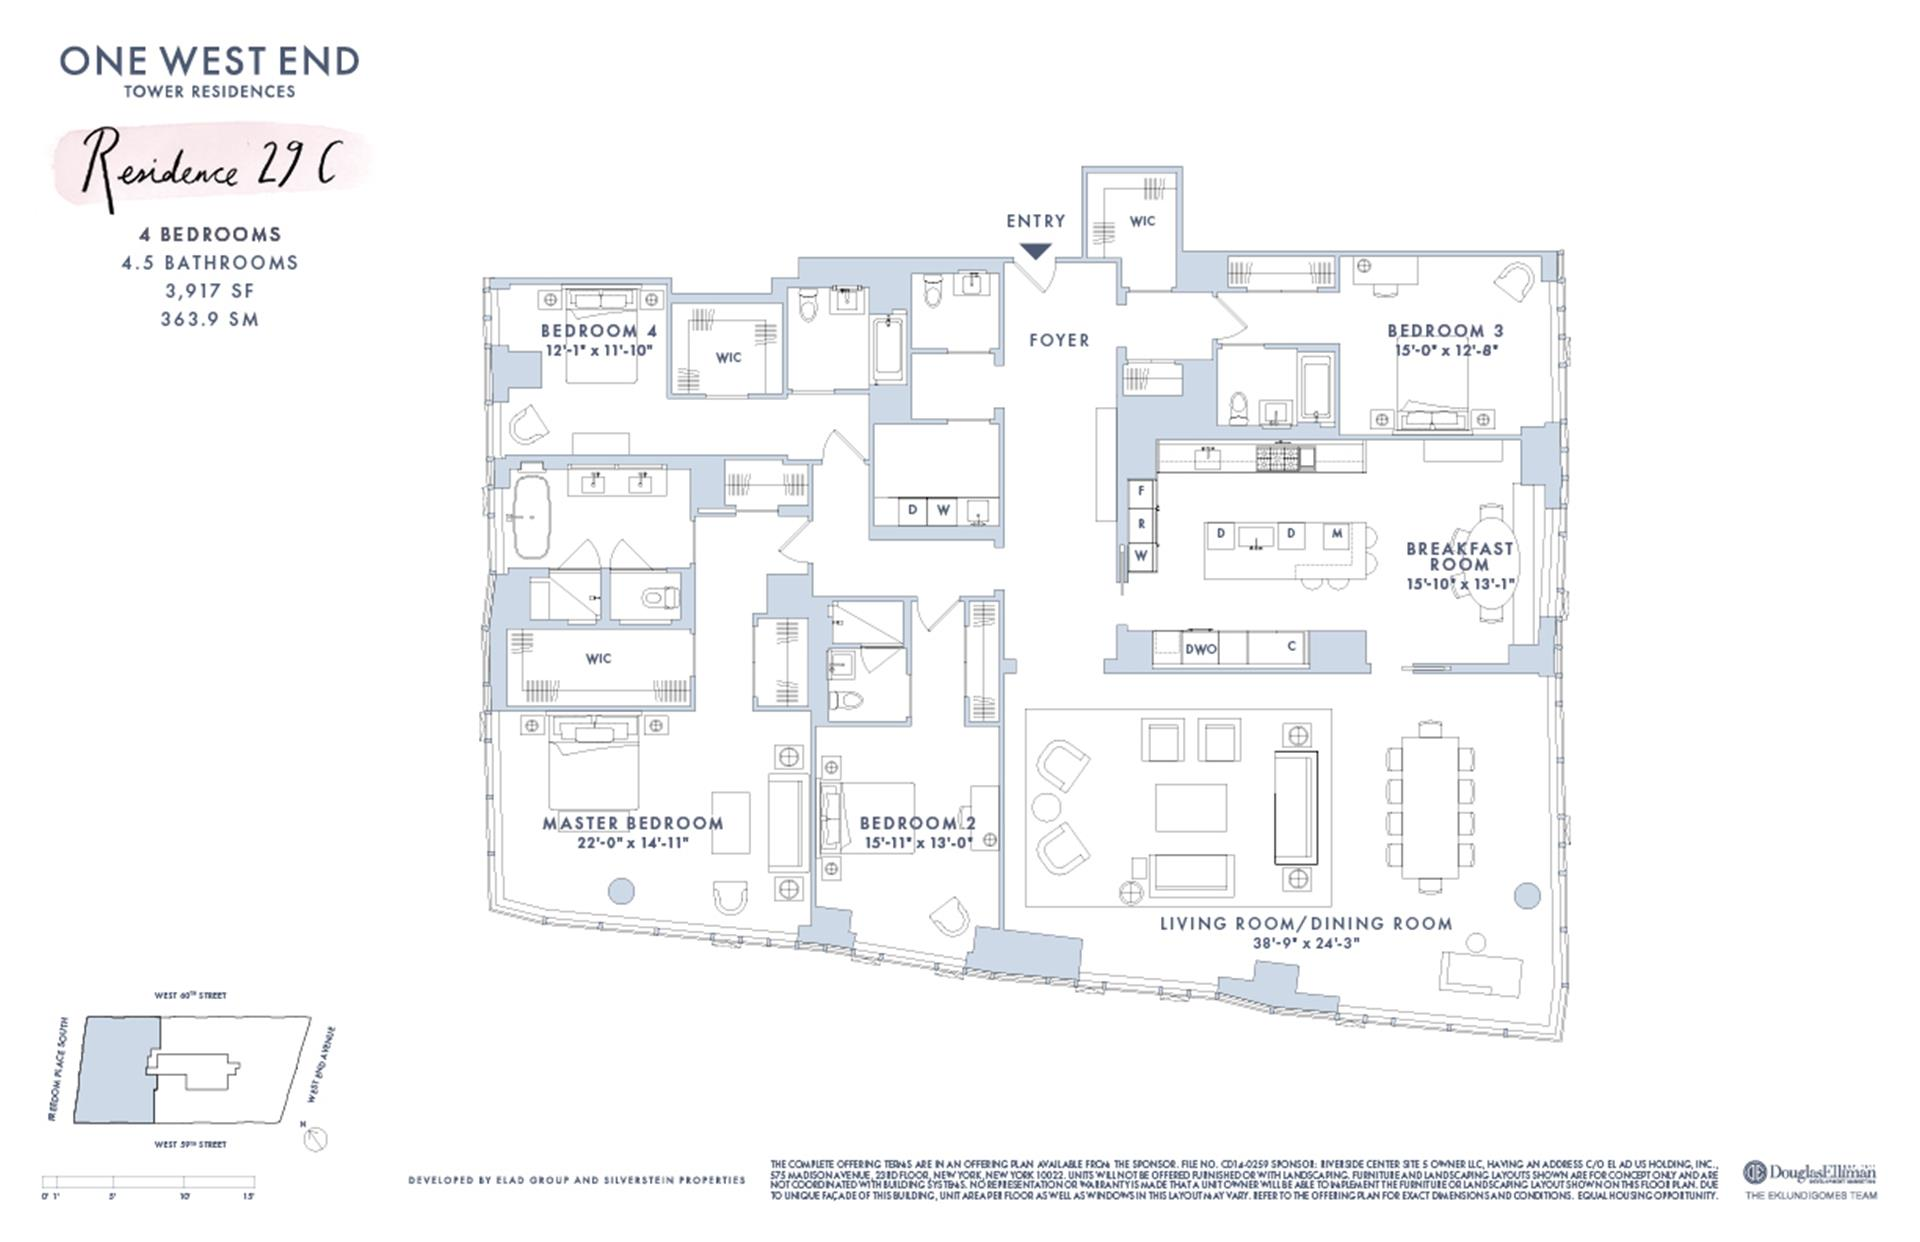 Floor plan of One West End, 1 West End Avenue, 29C - Upper West Side, New York